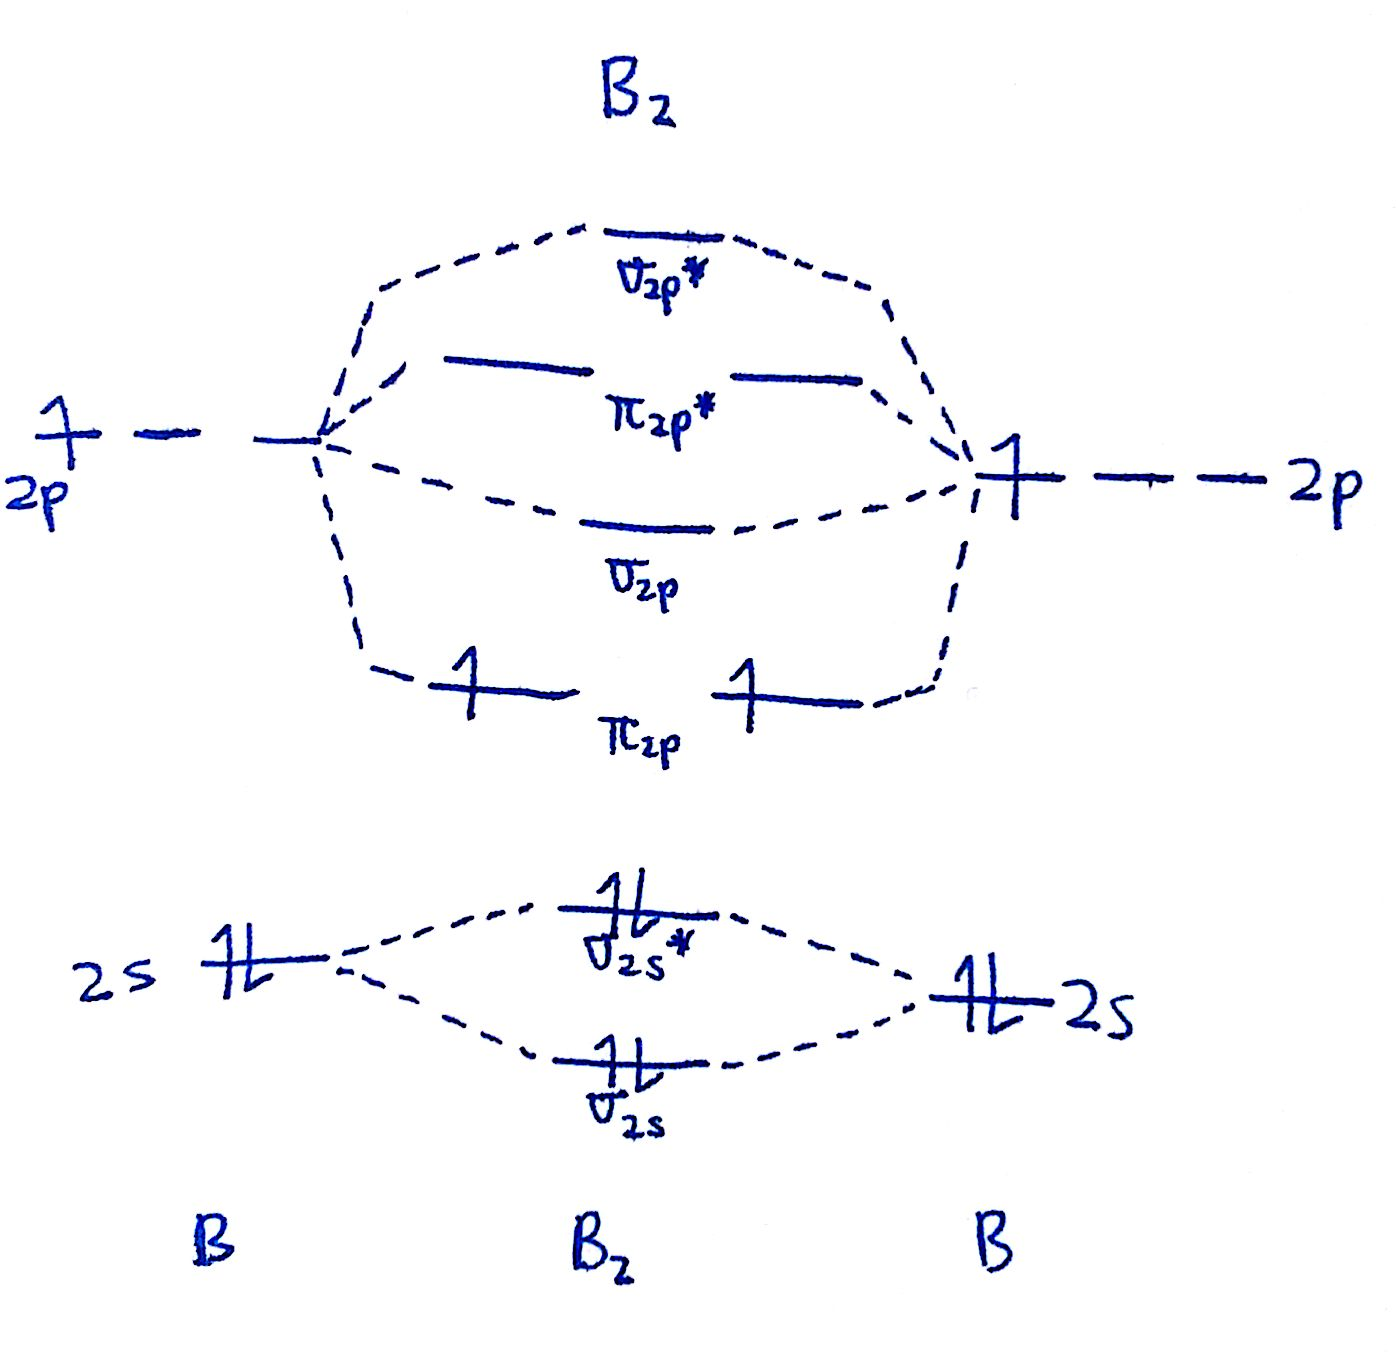 hight resolution of that s it for the mo diagram of b2 b 2 to check count how many electrons there are in total